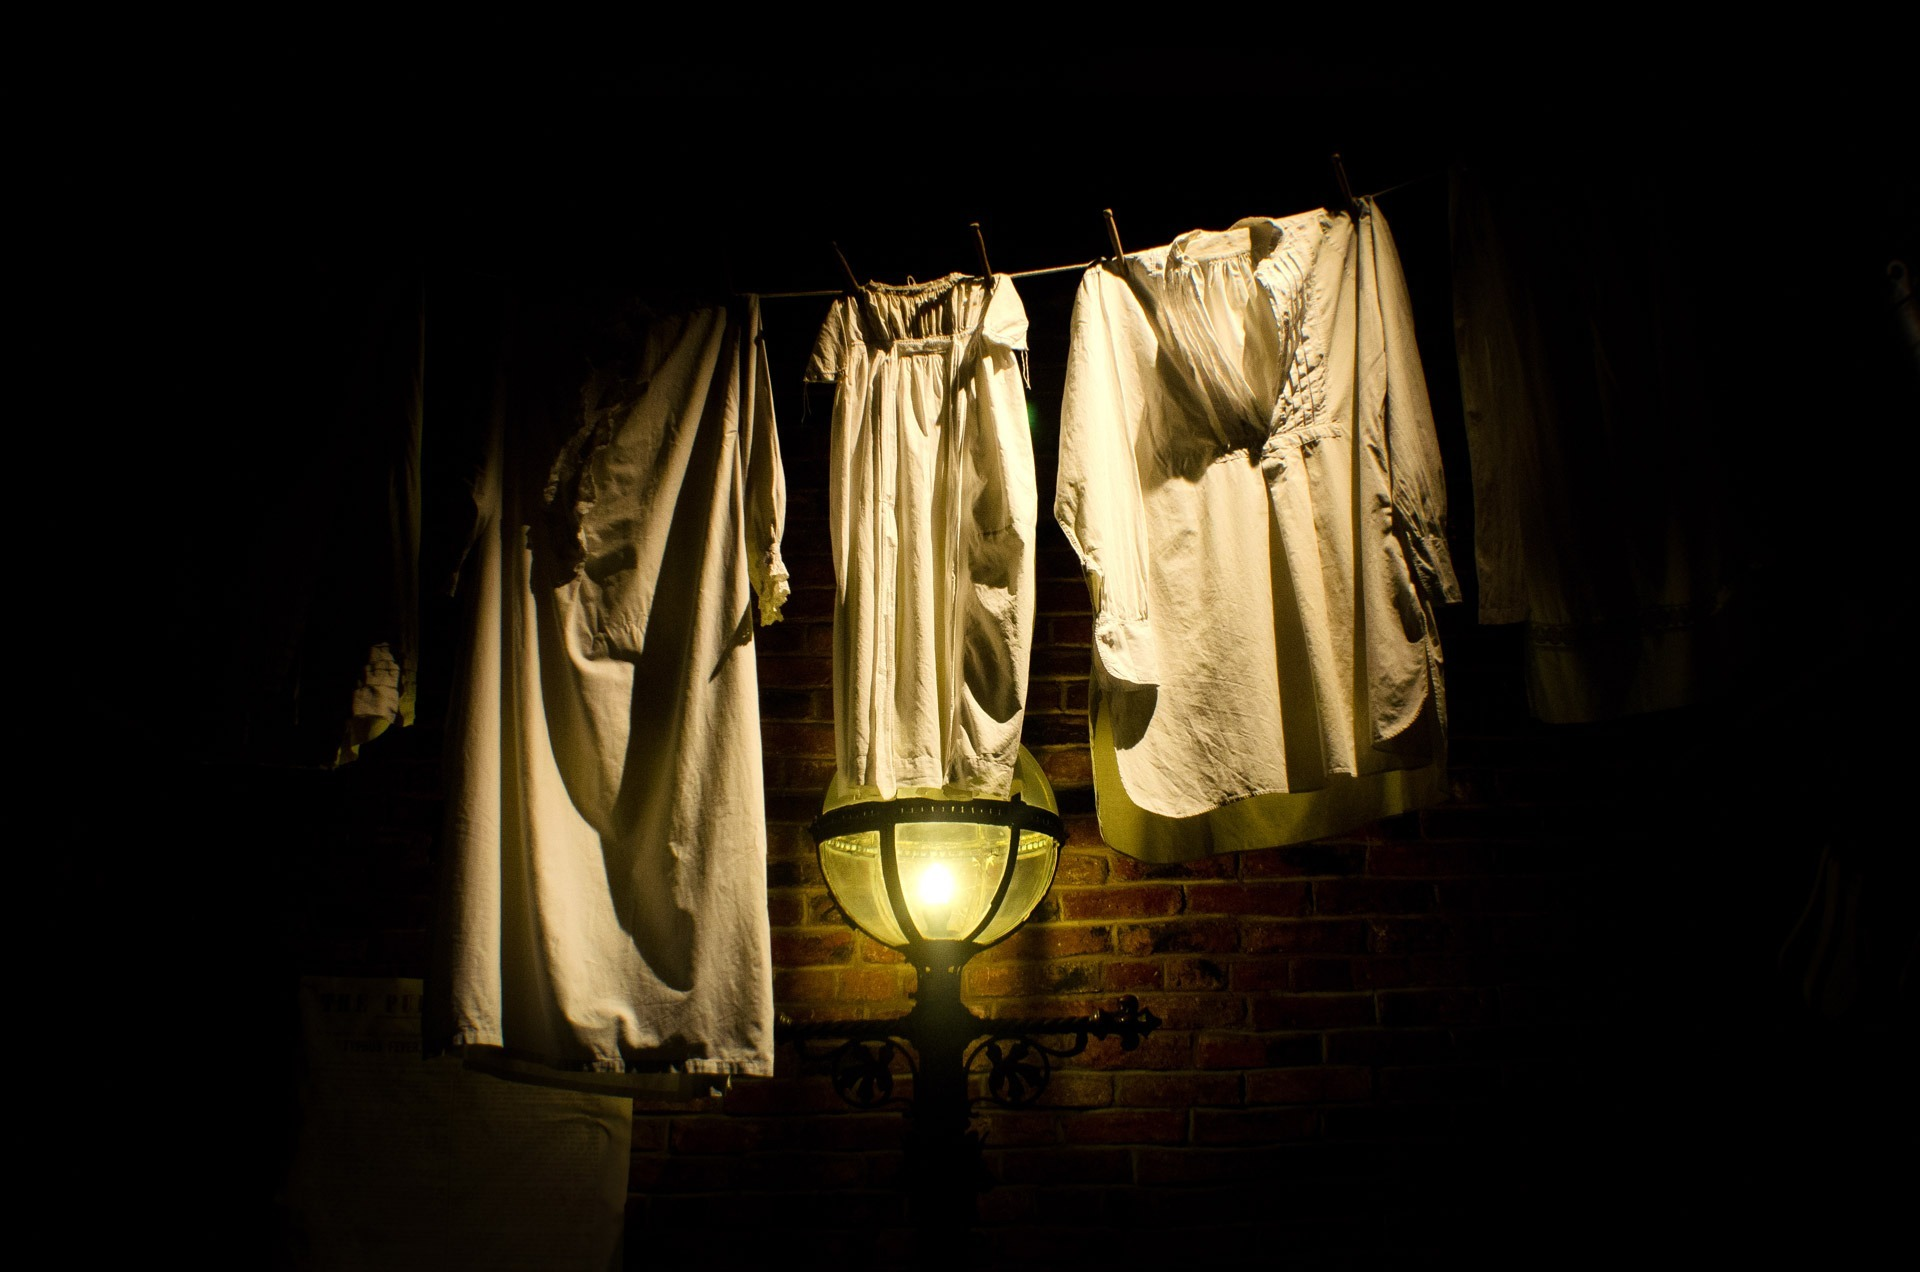 hang up clothes at night